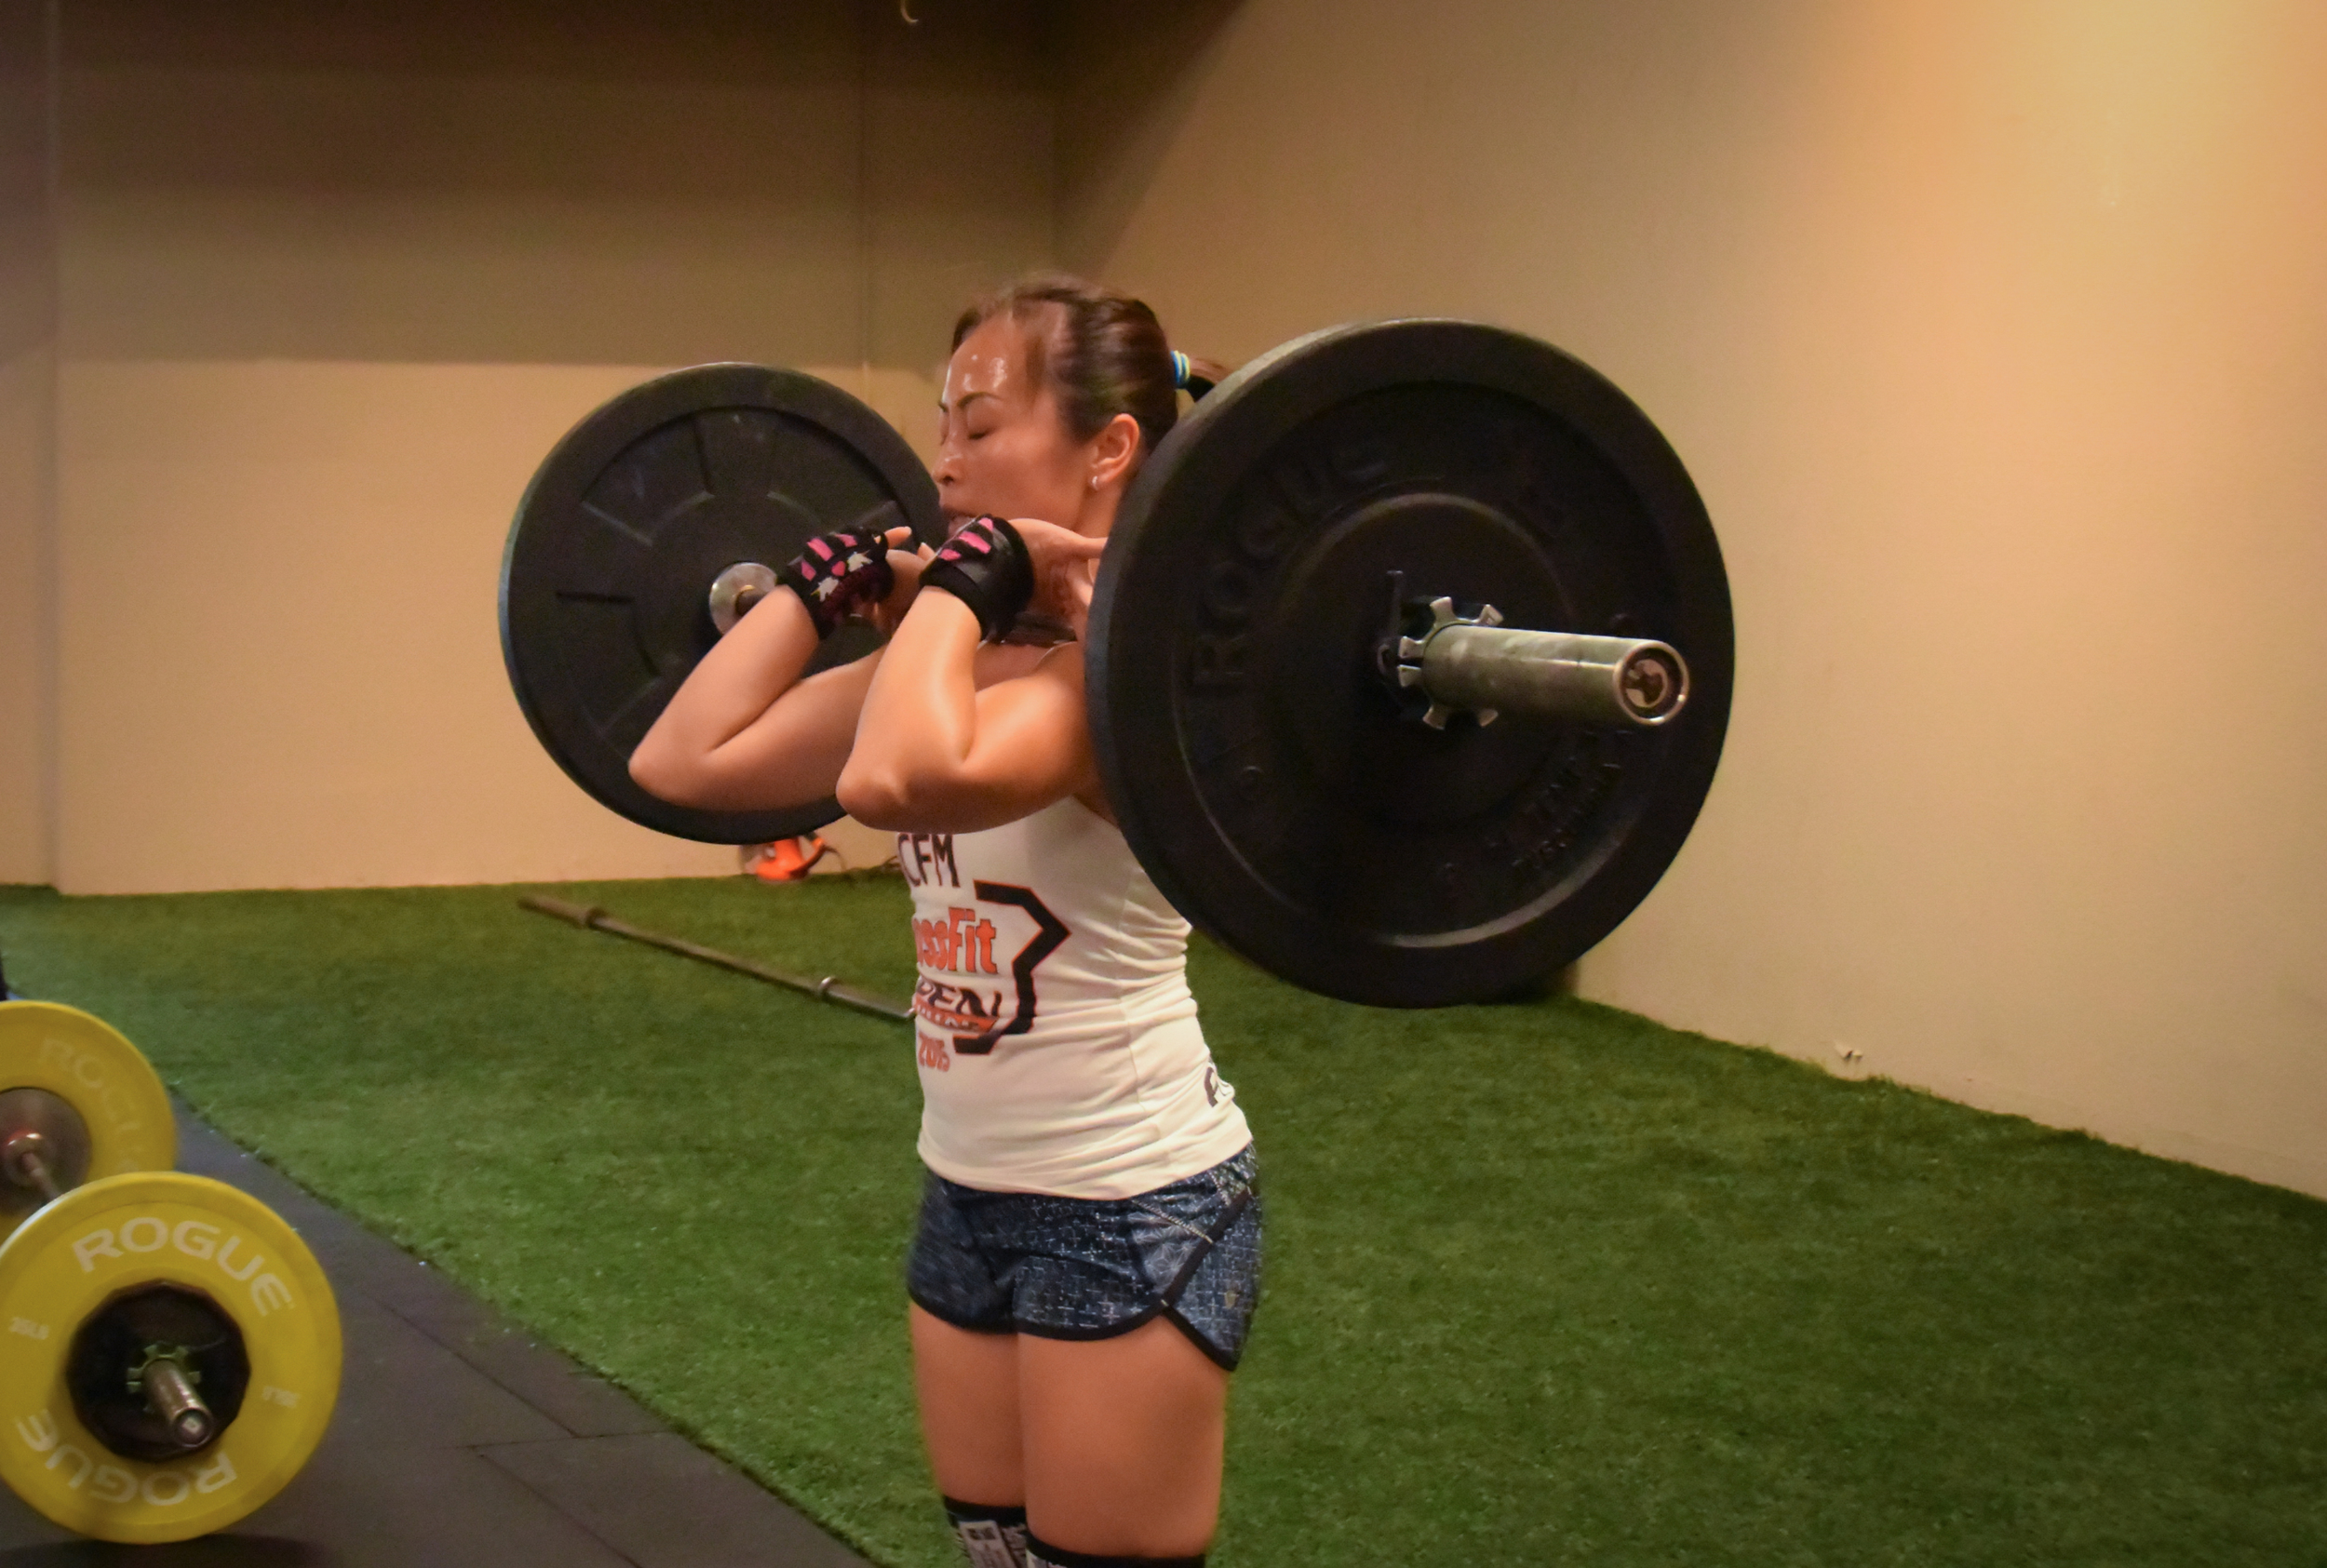 Felicia is knows to balance safe, efficient movement with intensity past her comfort zone.